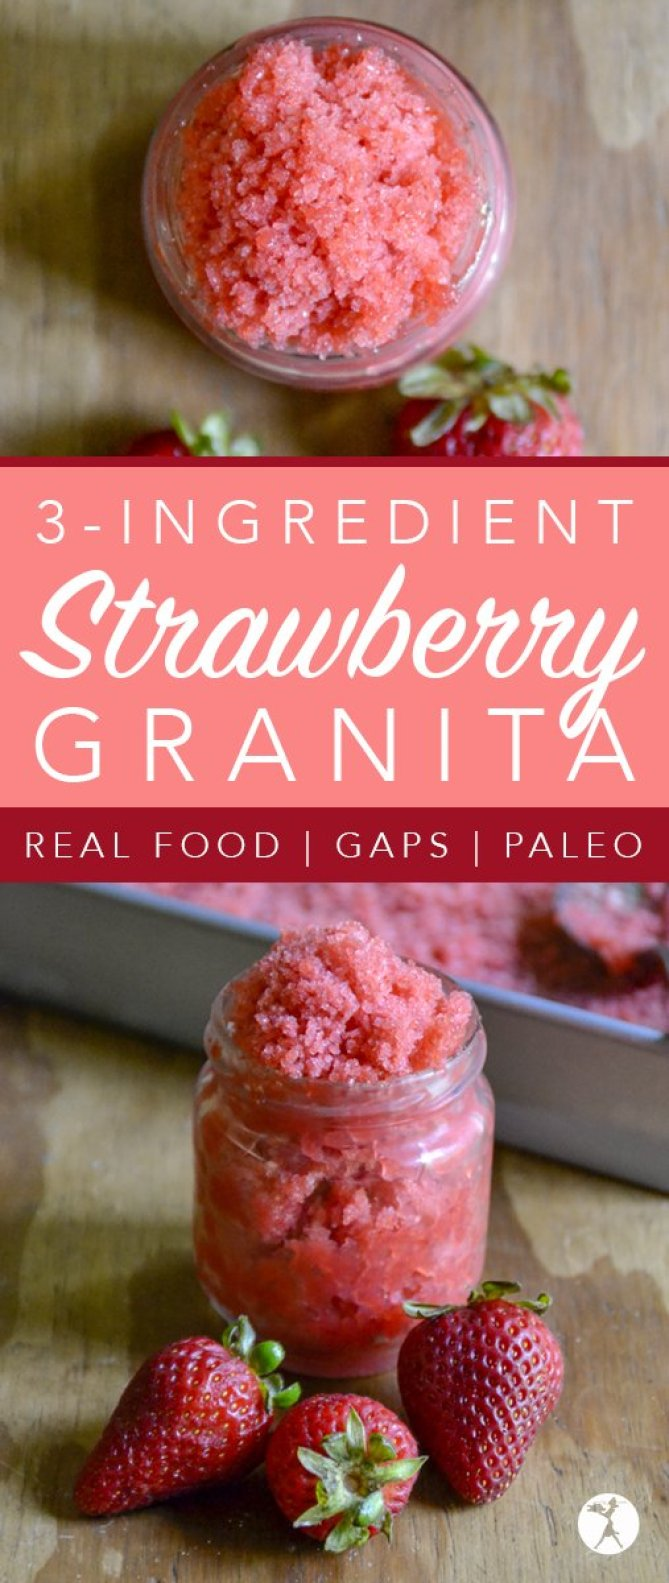 With only three ingredients, and no fancy equipment required, you're sure to enjoy this melt-in-your-mouth paleo Strawberry Granita!